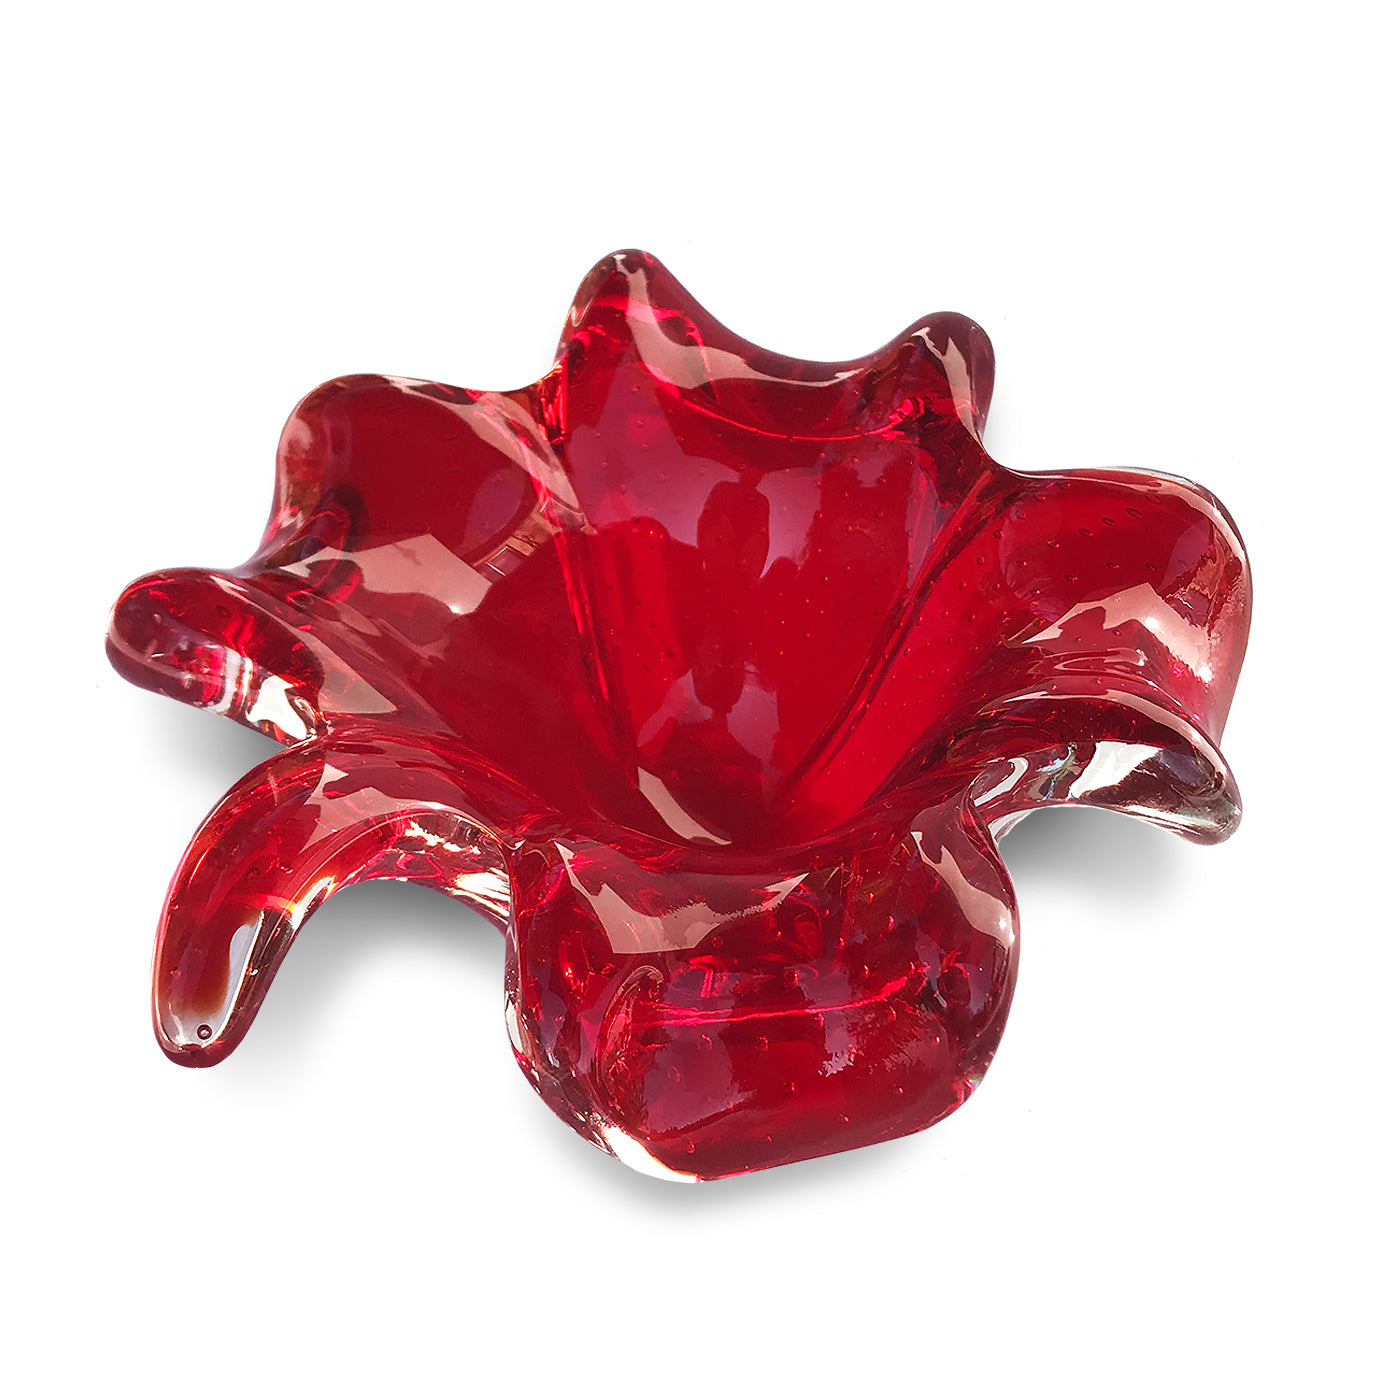 Bright red Murano Art Glass bubble vase - SHOP NOW - www.intovintage.co.uk